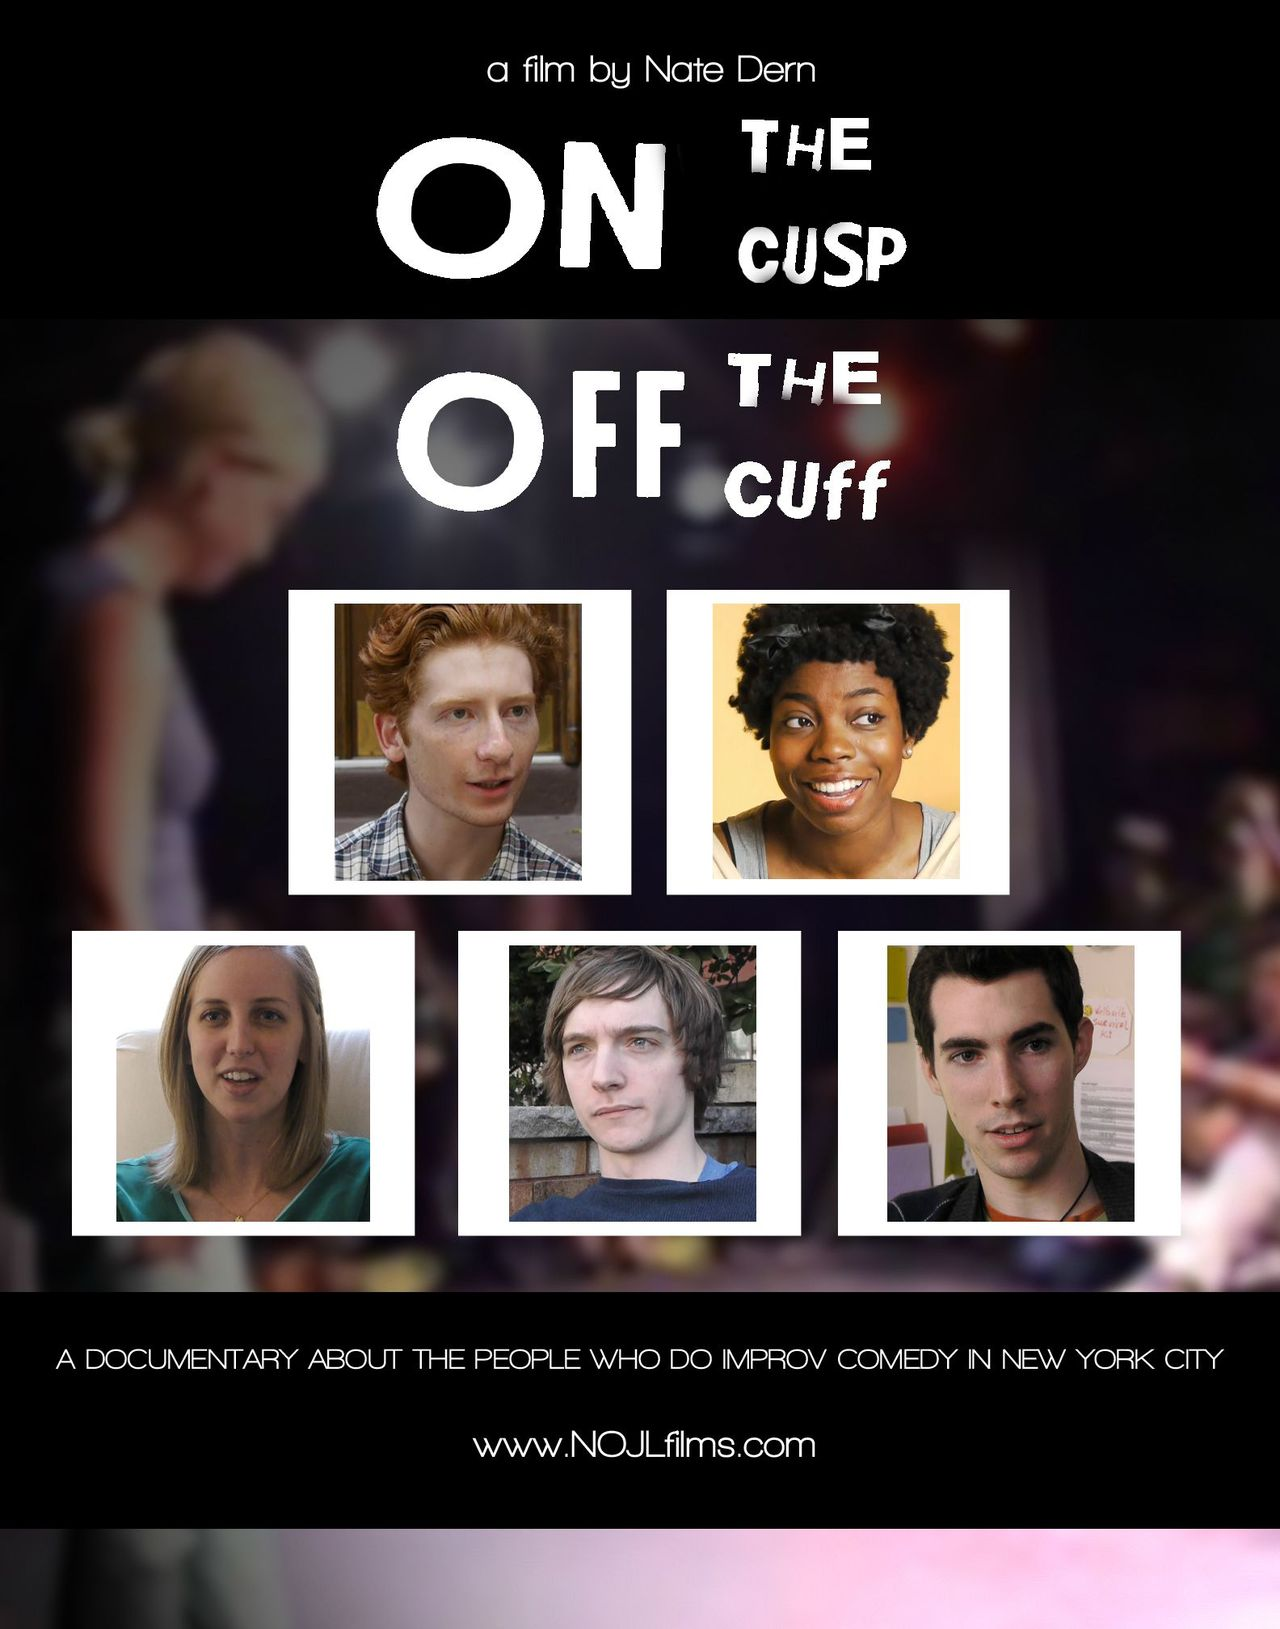 Thanks to everybody who came to the preview/work-in-progress screening of On The Cusp, Off The Cuff at UCBeast tonight! Stay tuned for future opportunities to see the film.  improvdoc: Special preview screening of On The Cusp, Off The Cuff this Wednesday 6/27 at 6pm at UCBeast (Avenue A and 3rd Street) - part of the Del Close Marathon festivities.  Make reservations here.  OTCOTC  is still a work in progress, so if you're in NYC and able to make it I'd appreciate any feedback or thoughts.